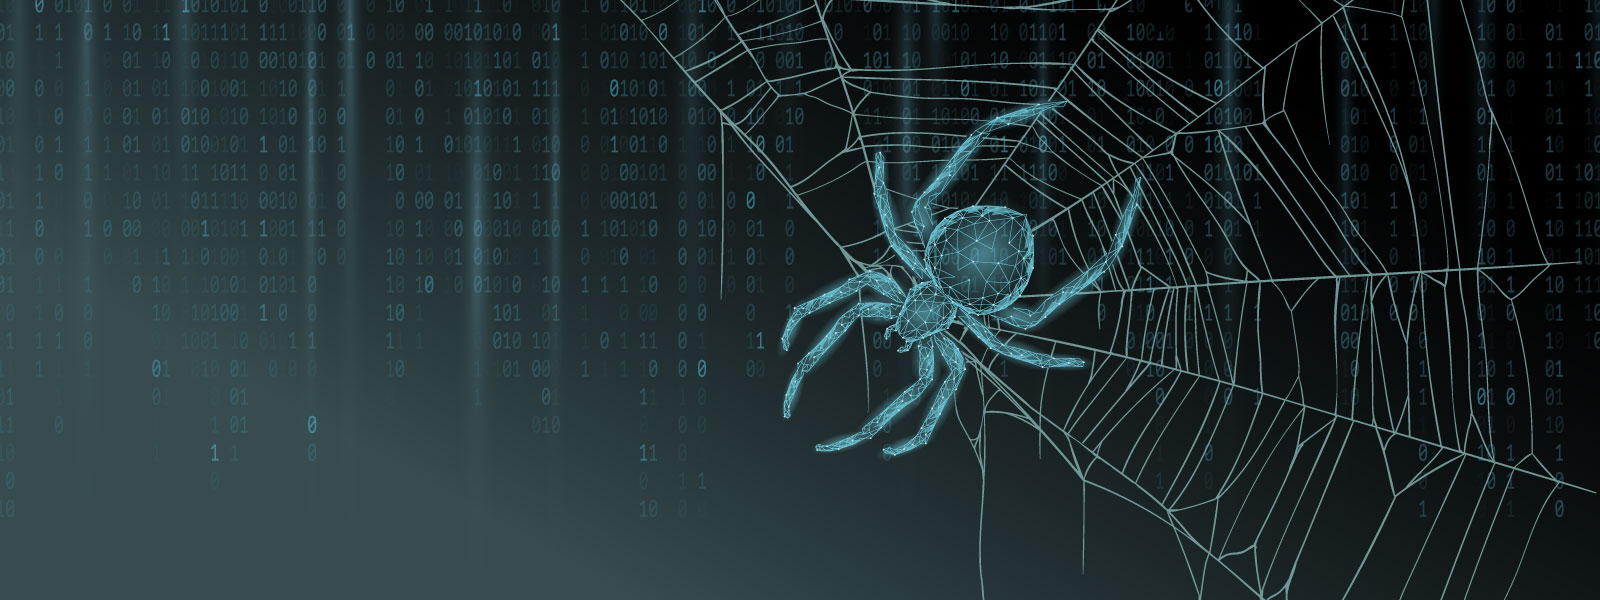 ref: https://www.psafinancial.com/2019/11/shining-light-on-the-dark-web-cyber-risk-management-strategies-to-minimize-impact-on-your-business/